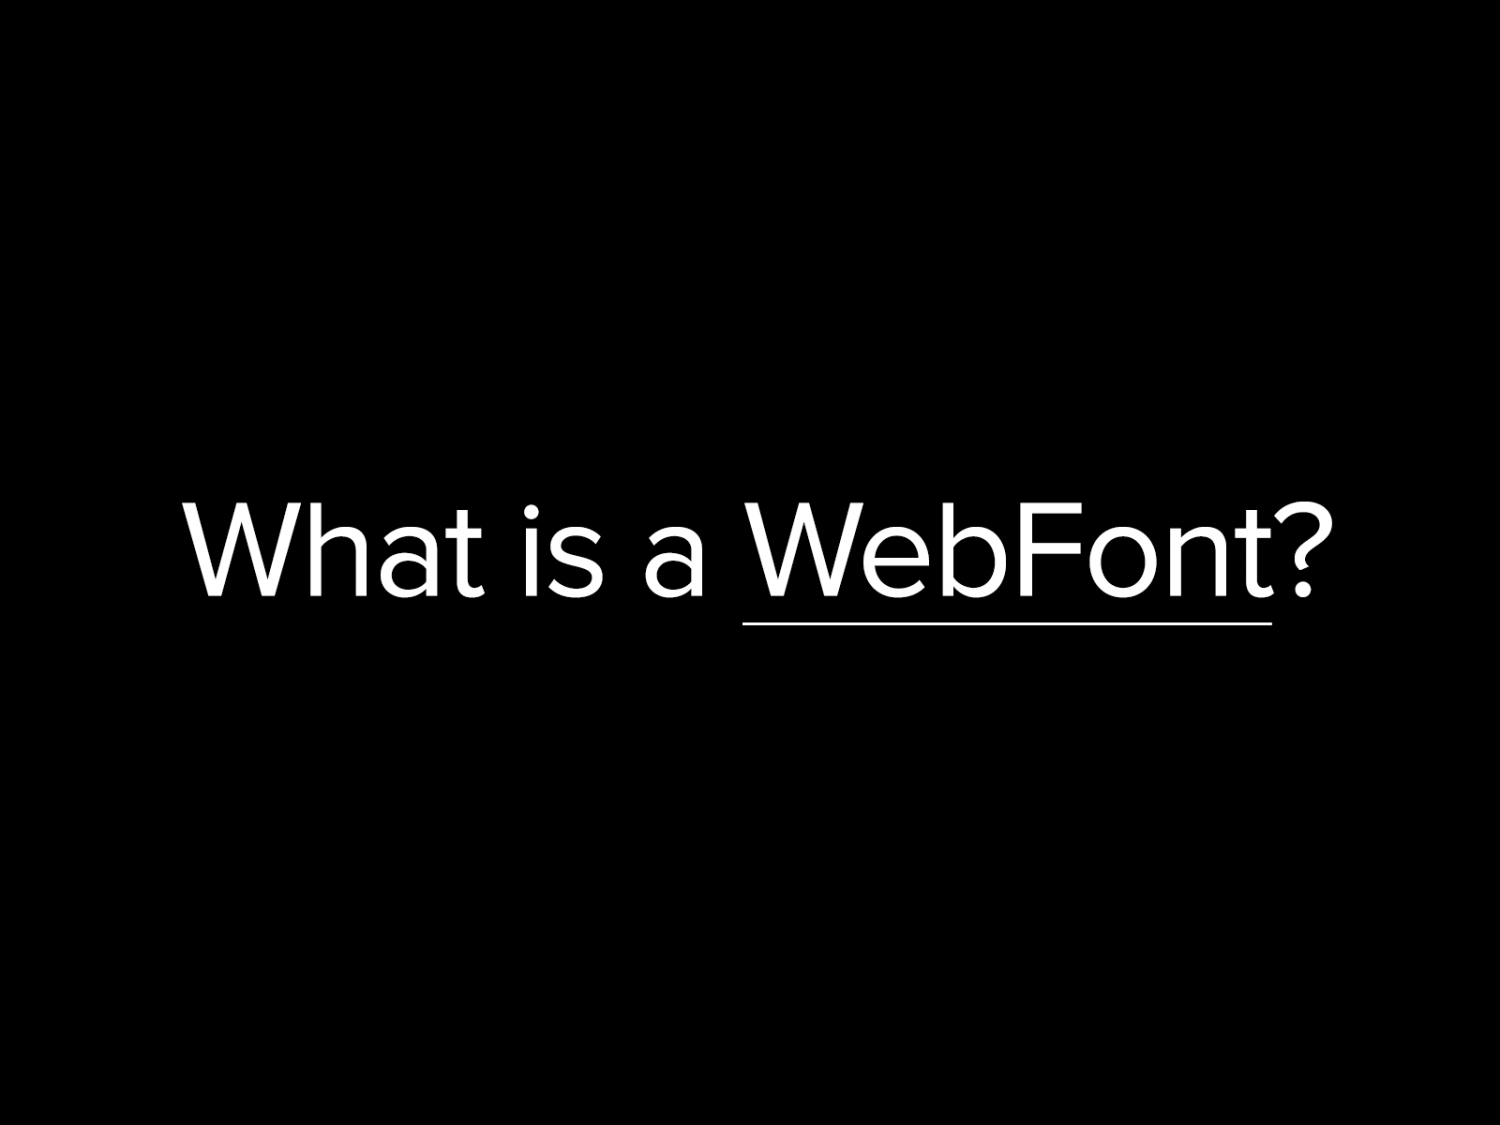 What is a WebFont